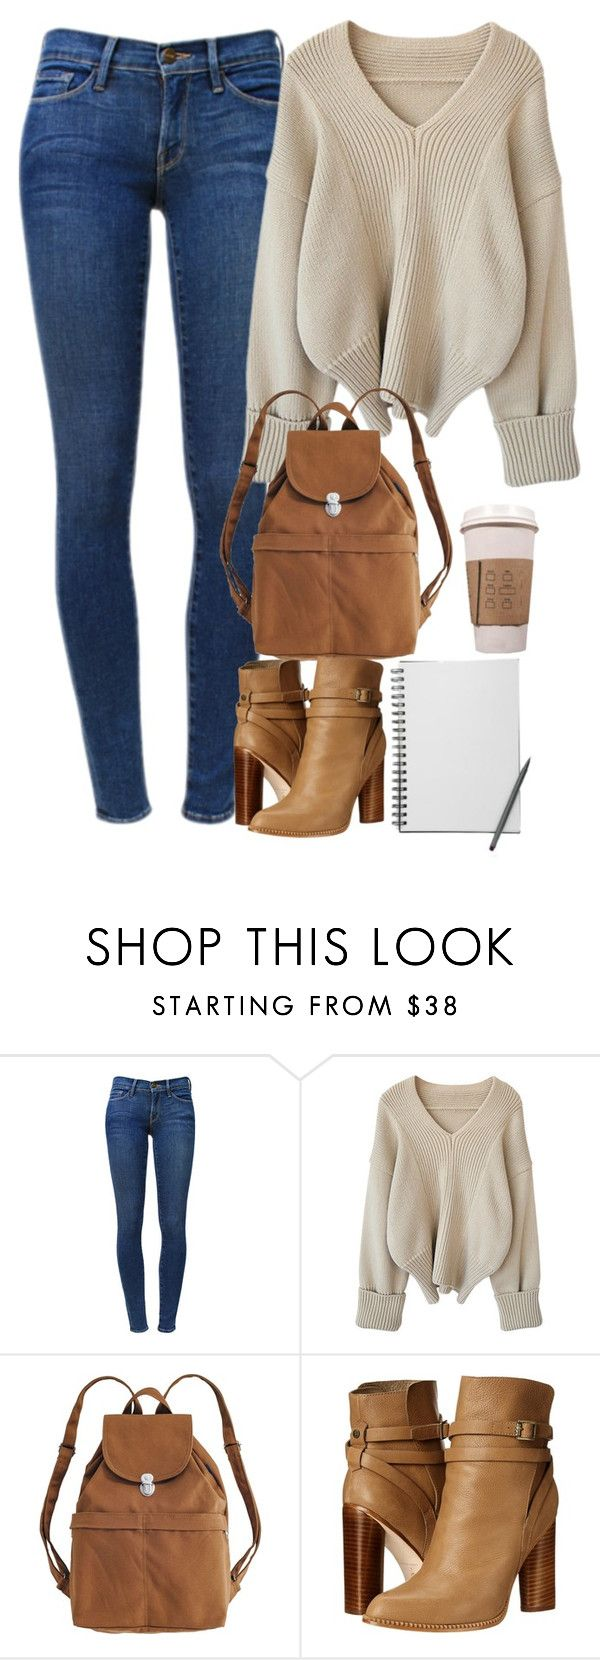 """(67)"" by maria-bss ❤ liked on Polyvore featuring Frame Denim, BAGGU and Cynthia Vincent"